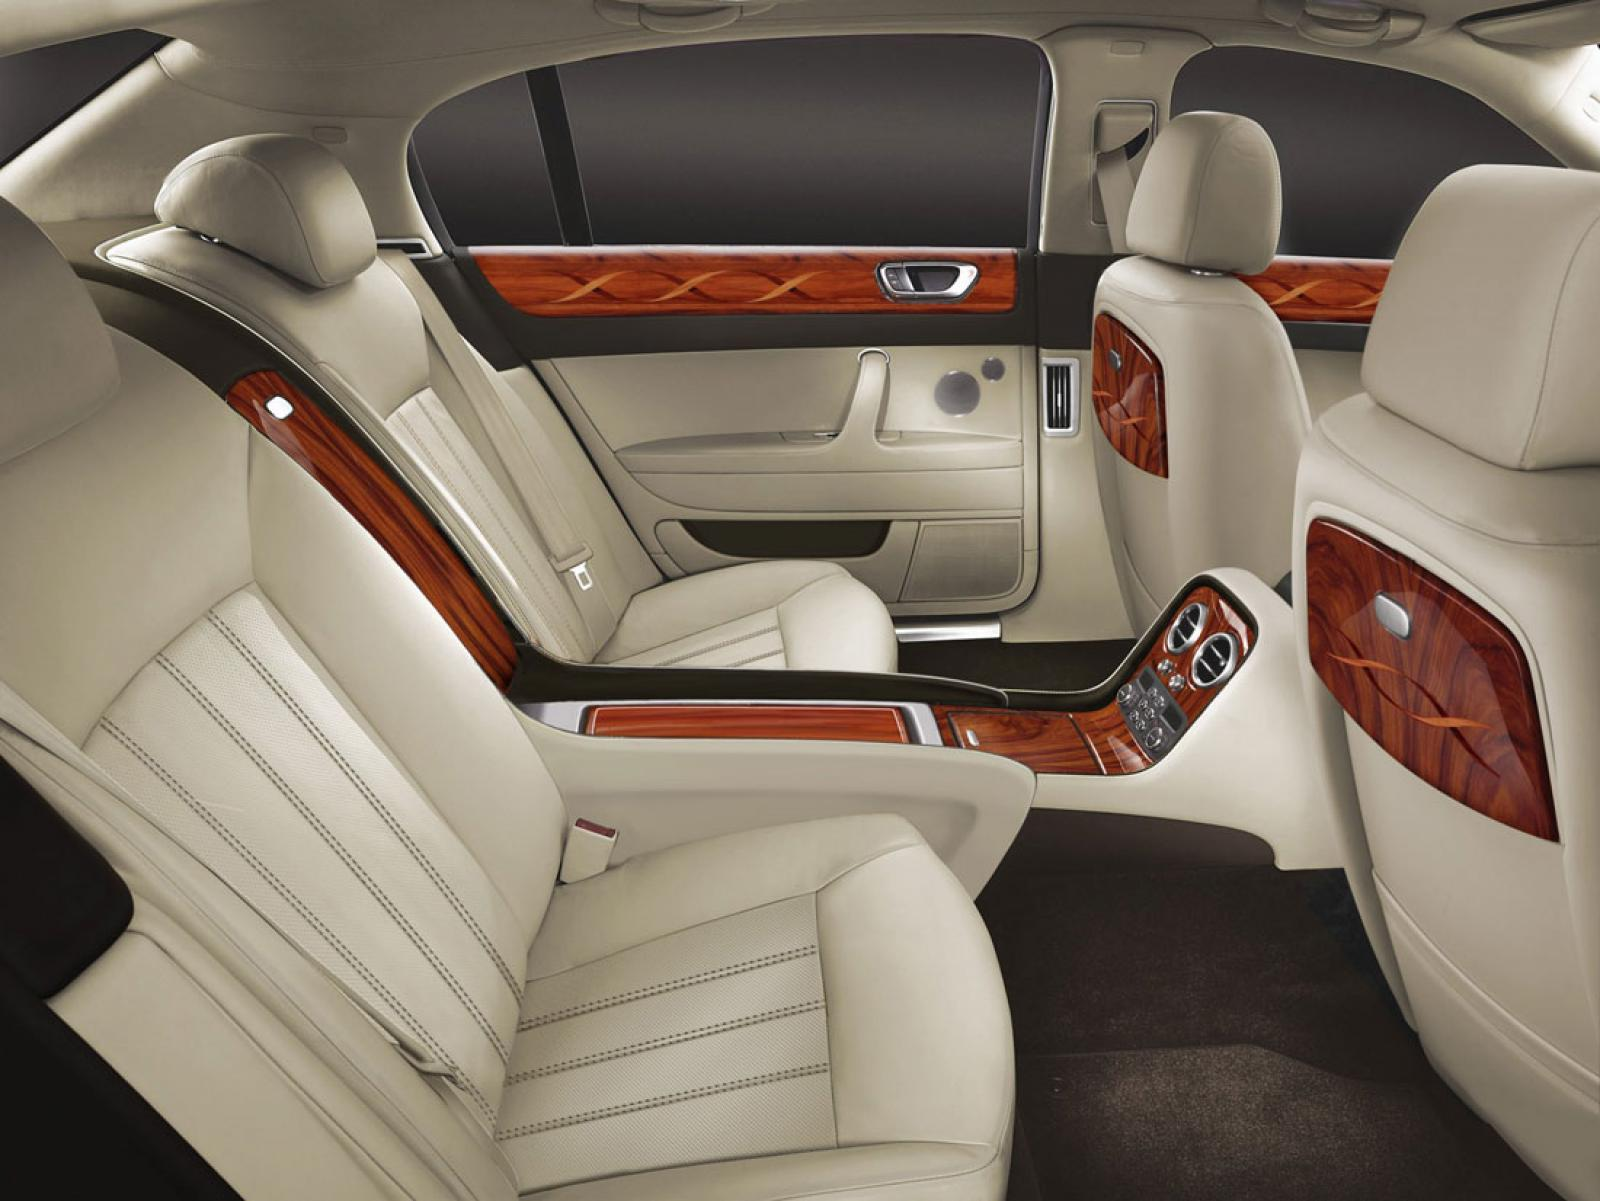 2012 Bentley Continental Flying Spur Information and photos